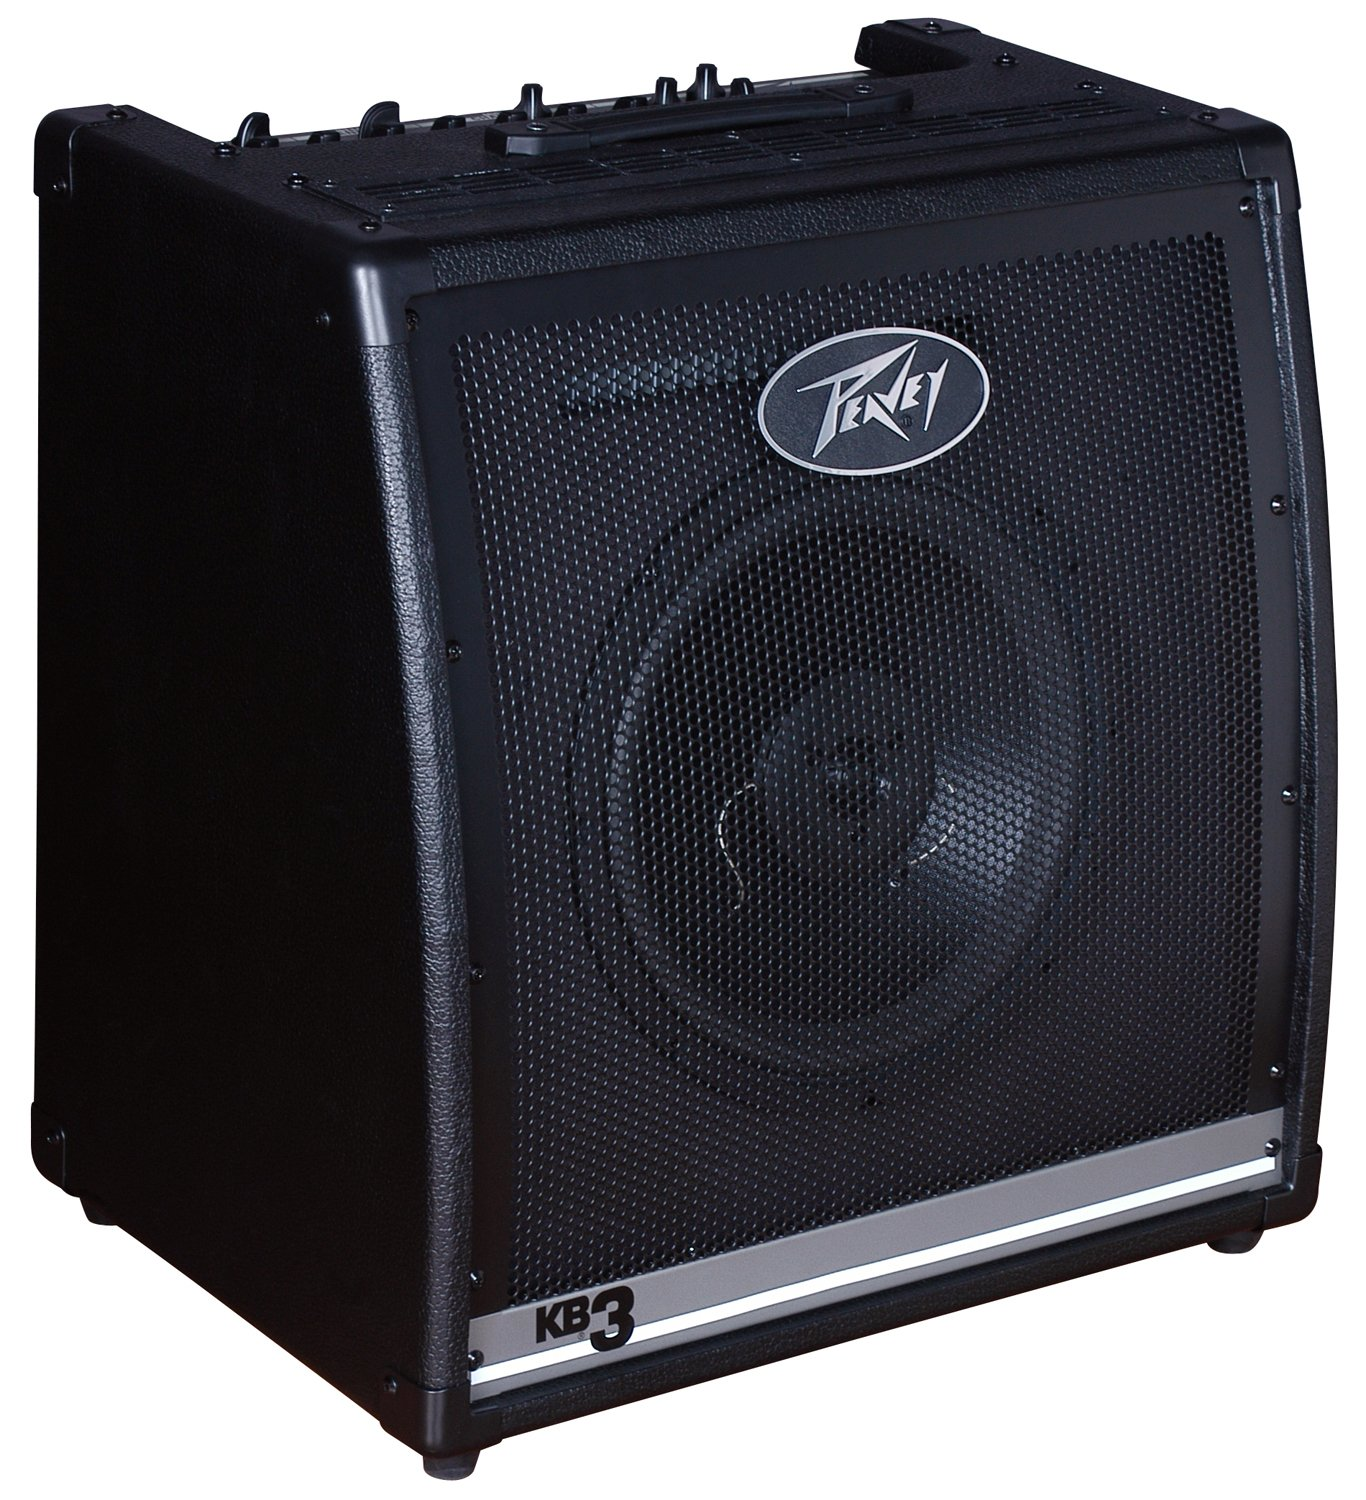 "Peavey KB3 60 Watt 1x12"" Keyboard Amp"